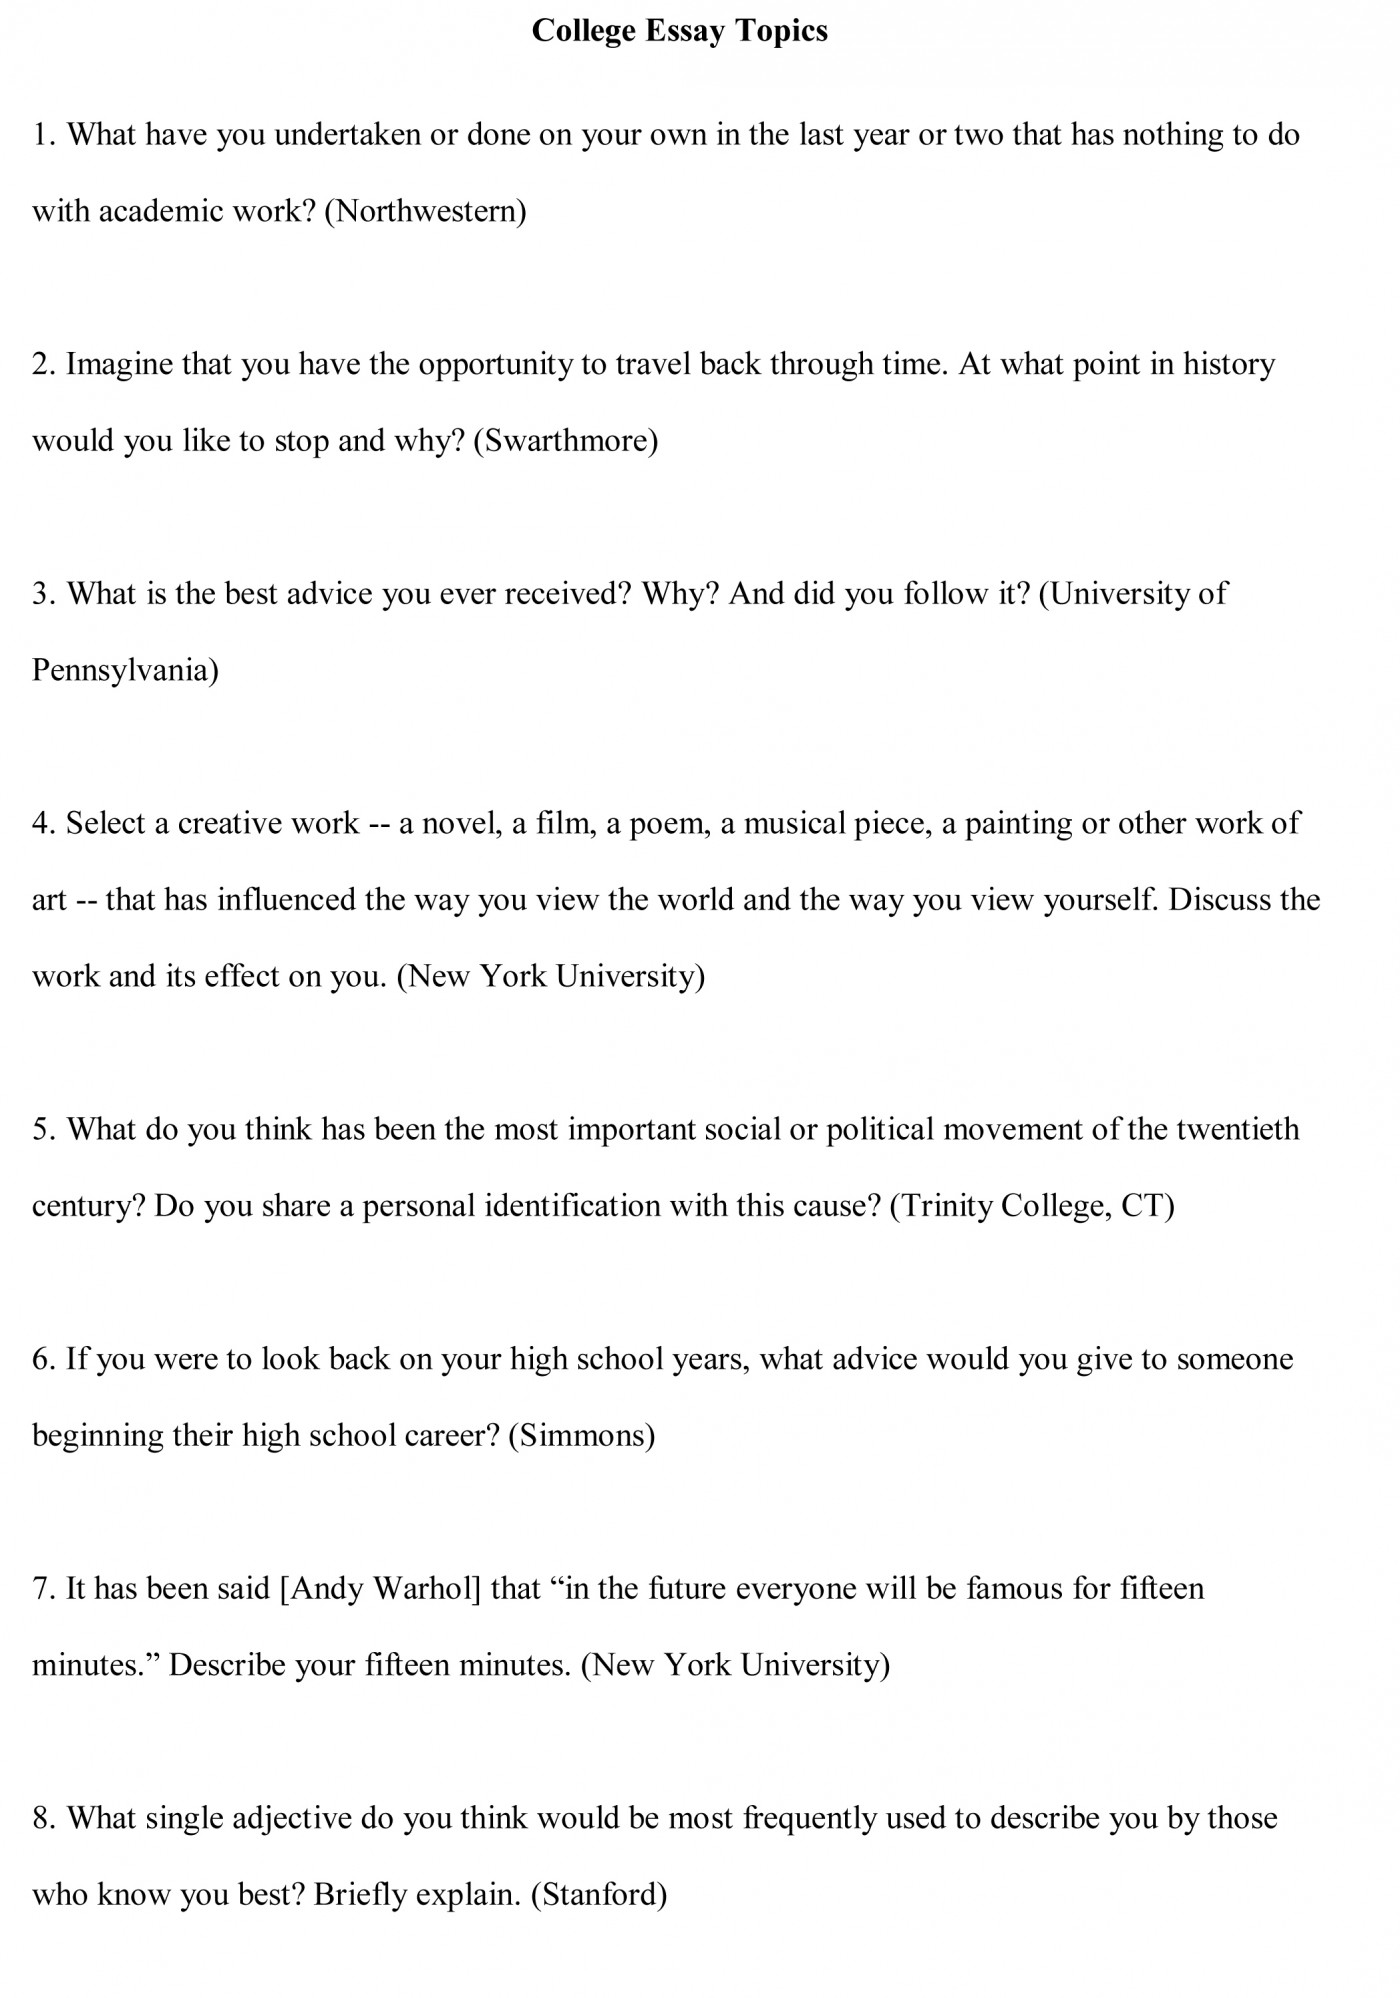 002 College Essay Topics Free Sample1cbu003d Top A B And C Argumentative Common To Avoid 1400